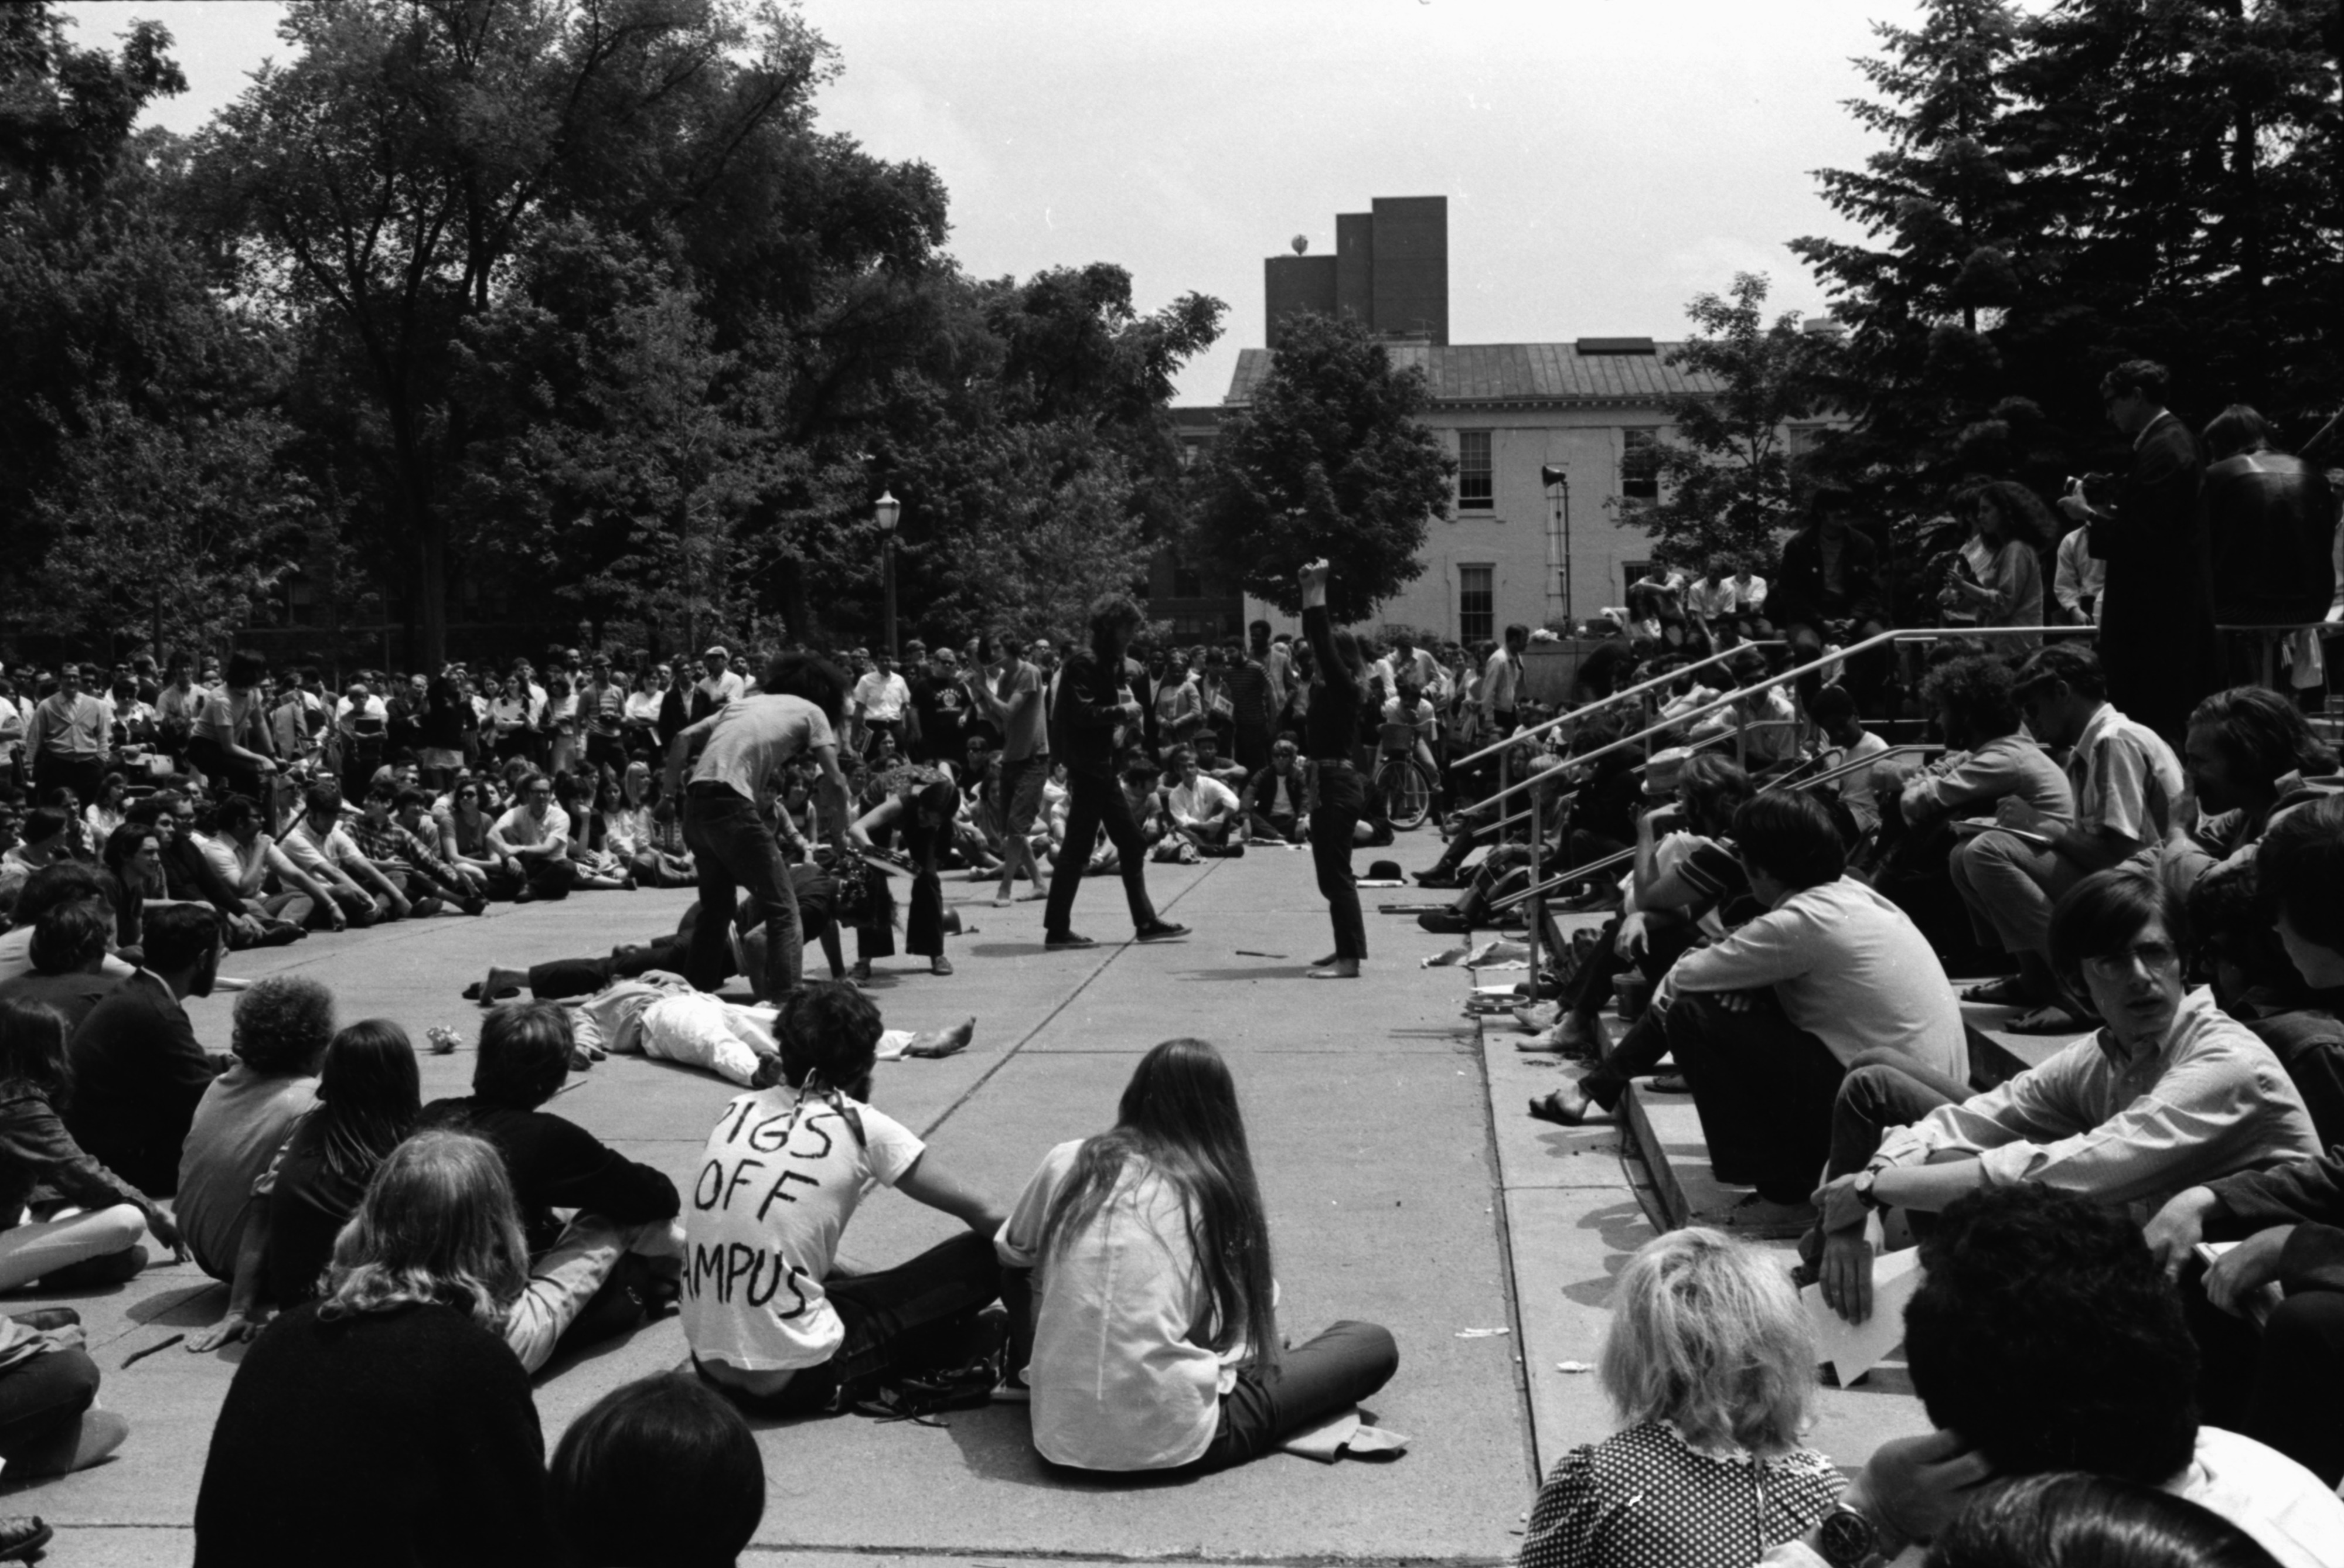 Protest on U-M Diag Following South University Riot, June 18, 1969 image